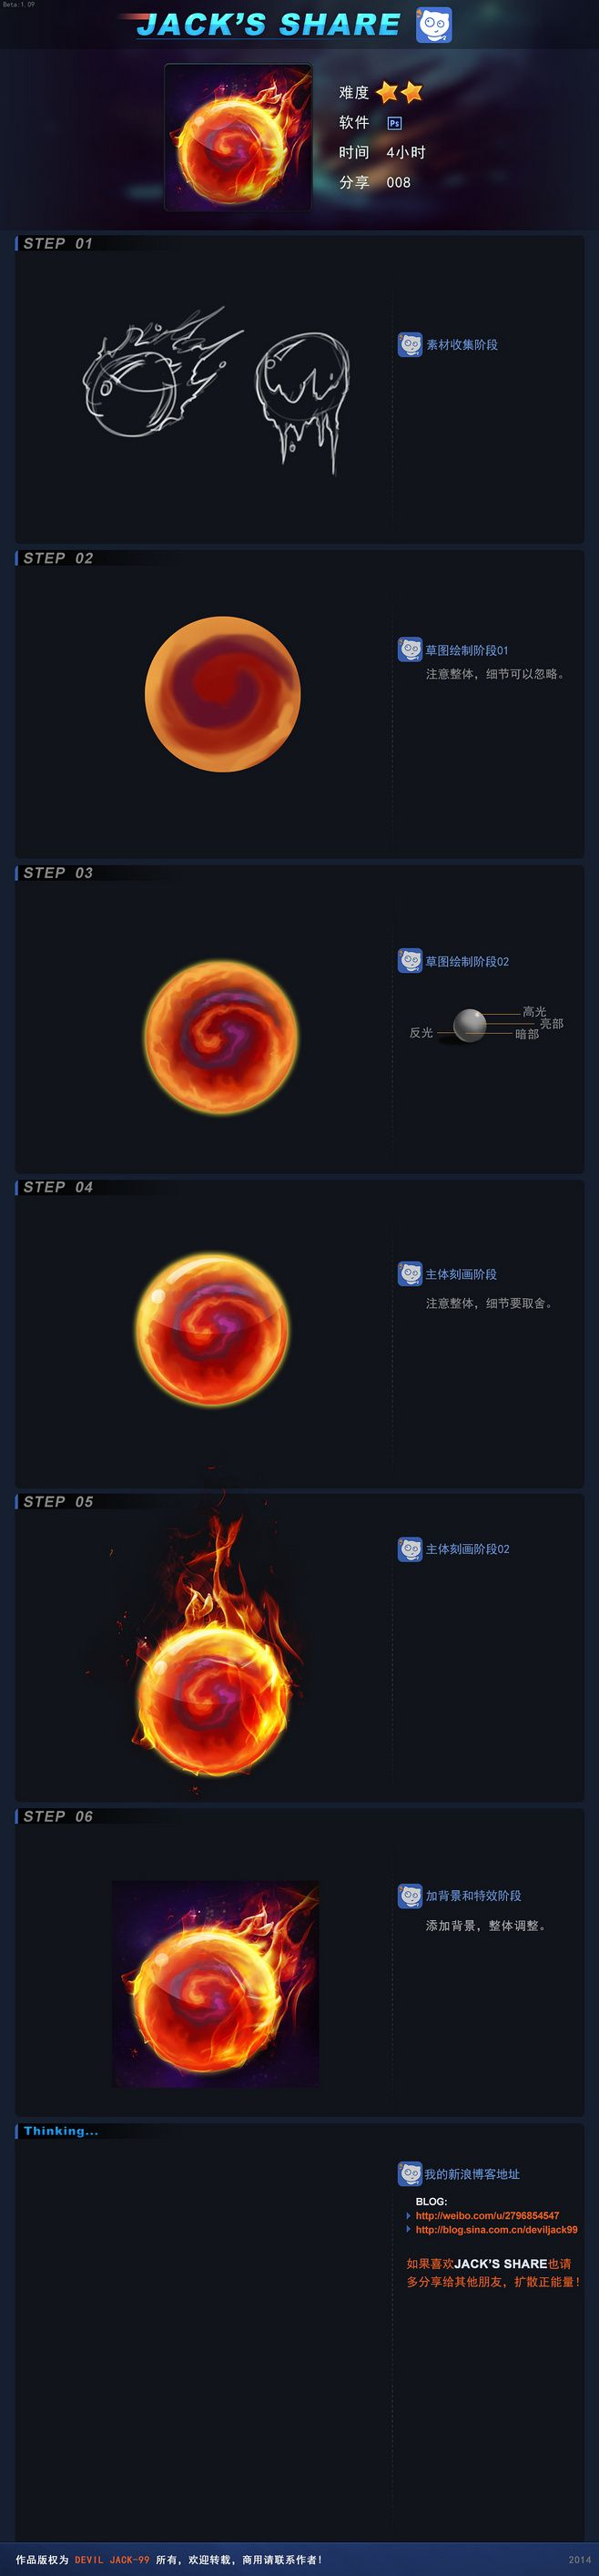 博客:http://blog.sina.... fireball fire magic spell effect resource tool how to tutorial instructions | Create your own roleplaying game material w/ RPG Bard: www.rpgbard.com | Writing inspiration for Dungeons and Dragons DND D&D Pathfinder PFRPG Warhammer 40k Star Wars Shadowrun Call of Cthulhu Lord of the Rings LoTR + d20 fantasy science fiction scifi horror design | Not our art: click artwork for source